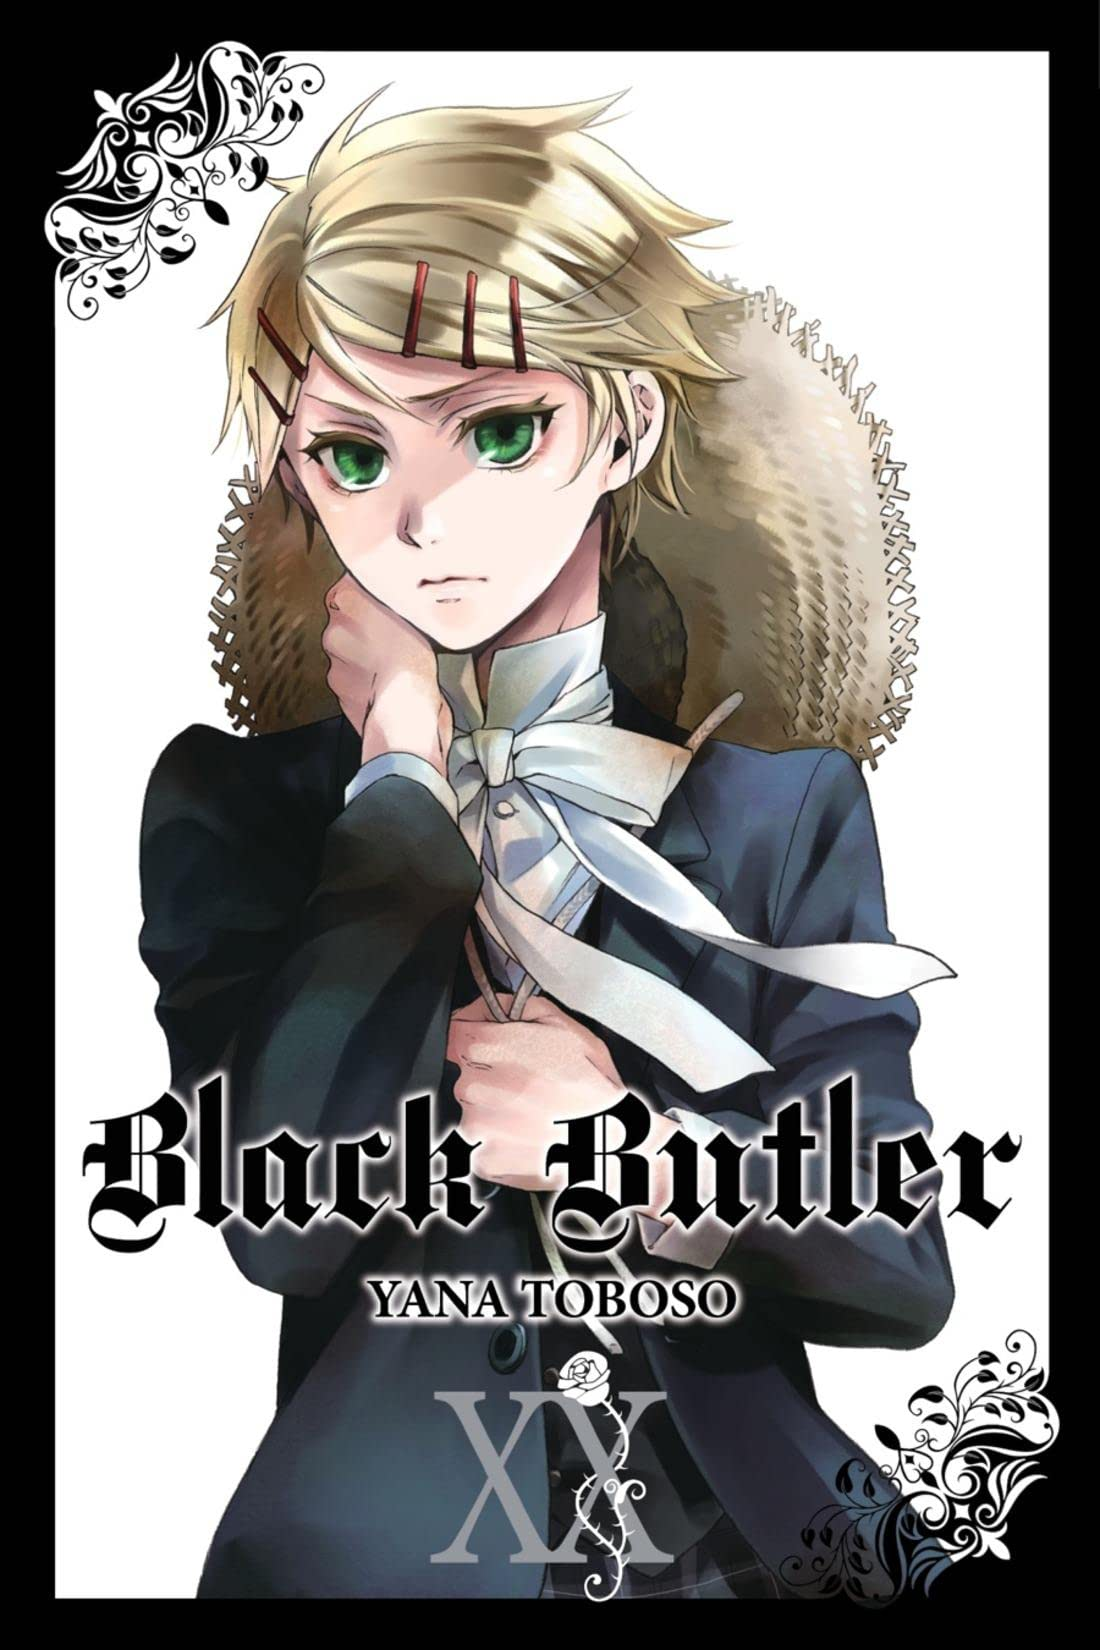 Black Butler Vol. 20